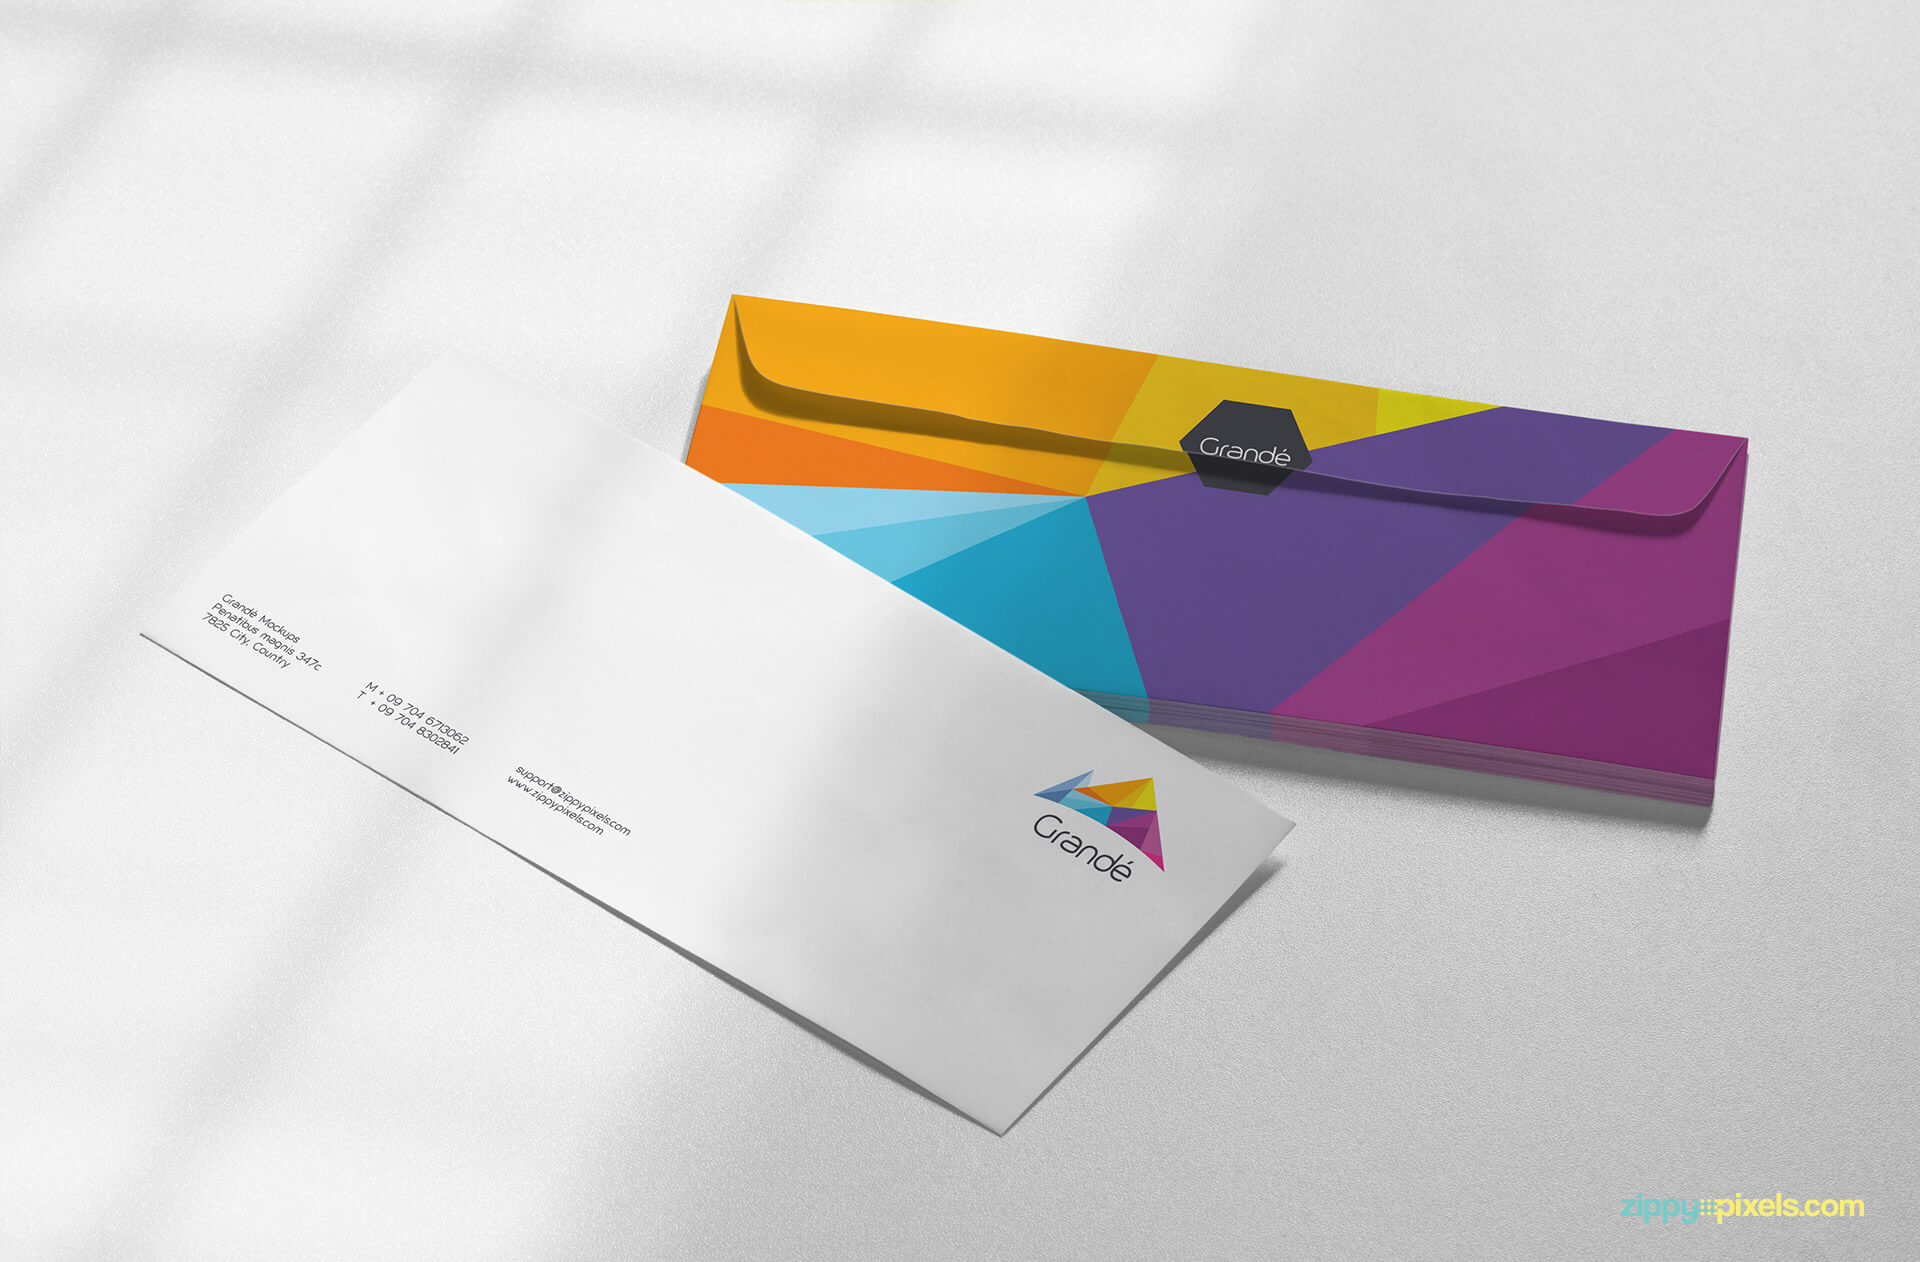 Stationery Mockup of 2 Envelopes